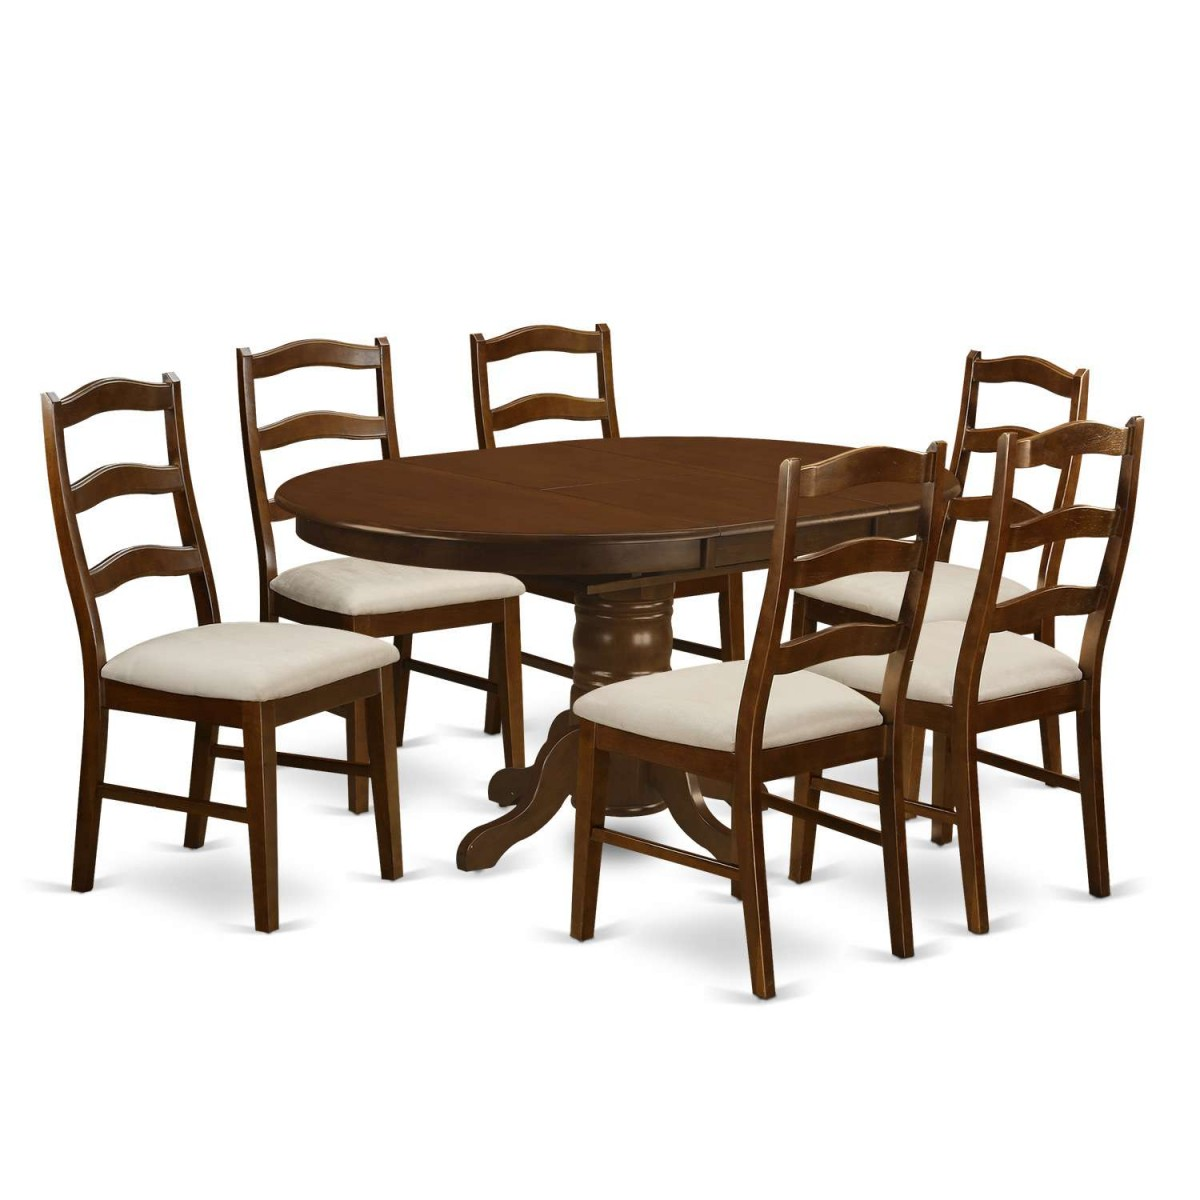 Cheap 7 Piece Dining Sets: East West Furniture Kenley 7 Piece Dining Table Set